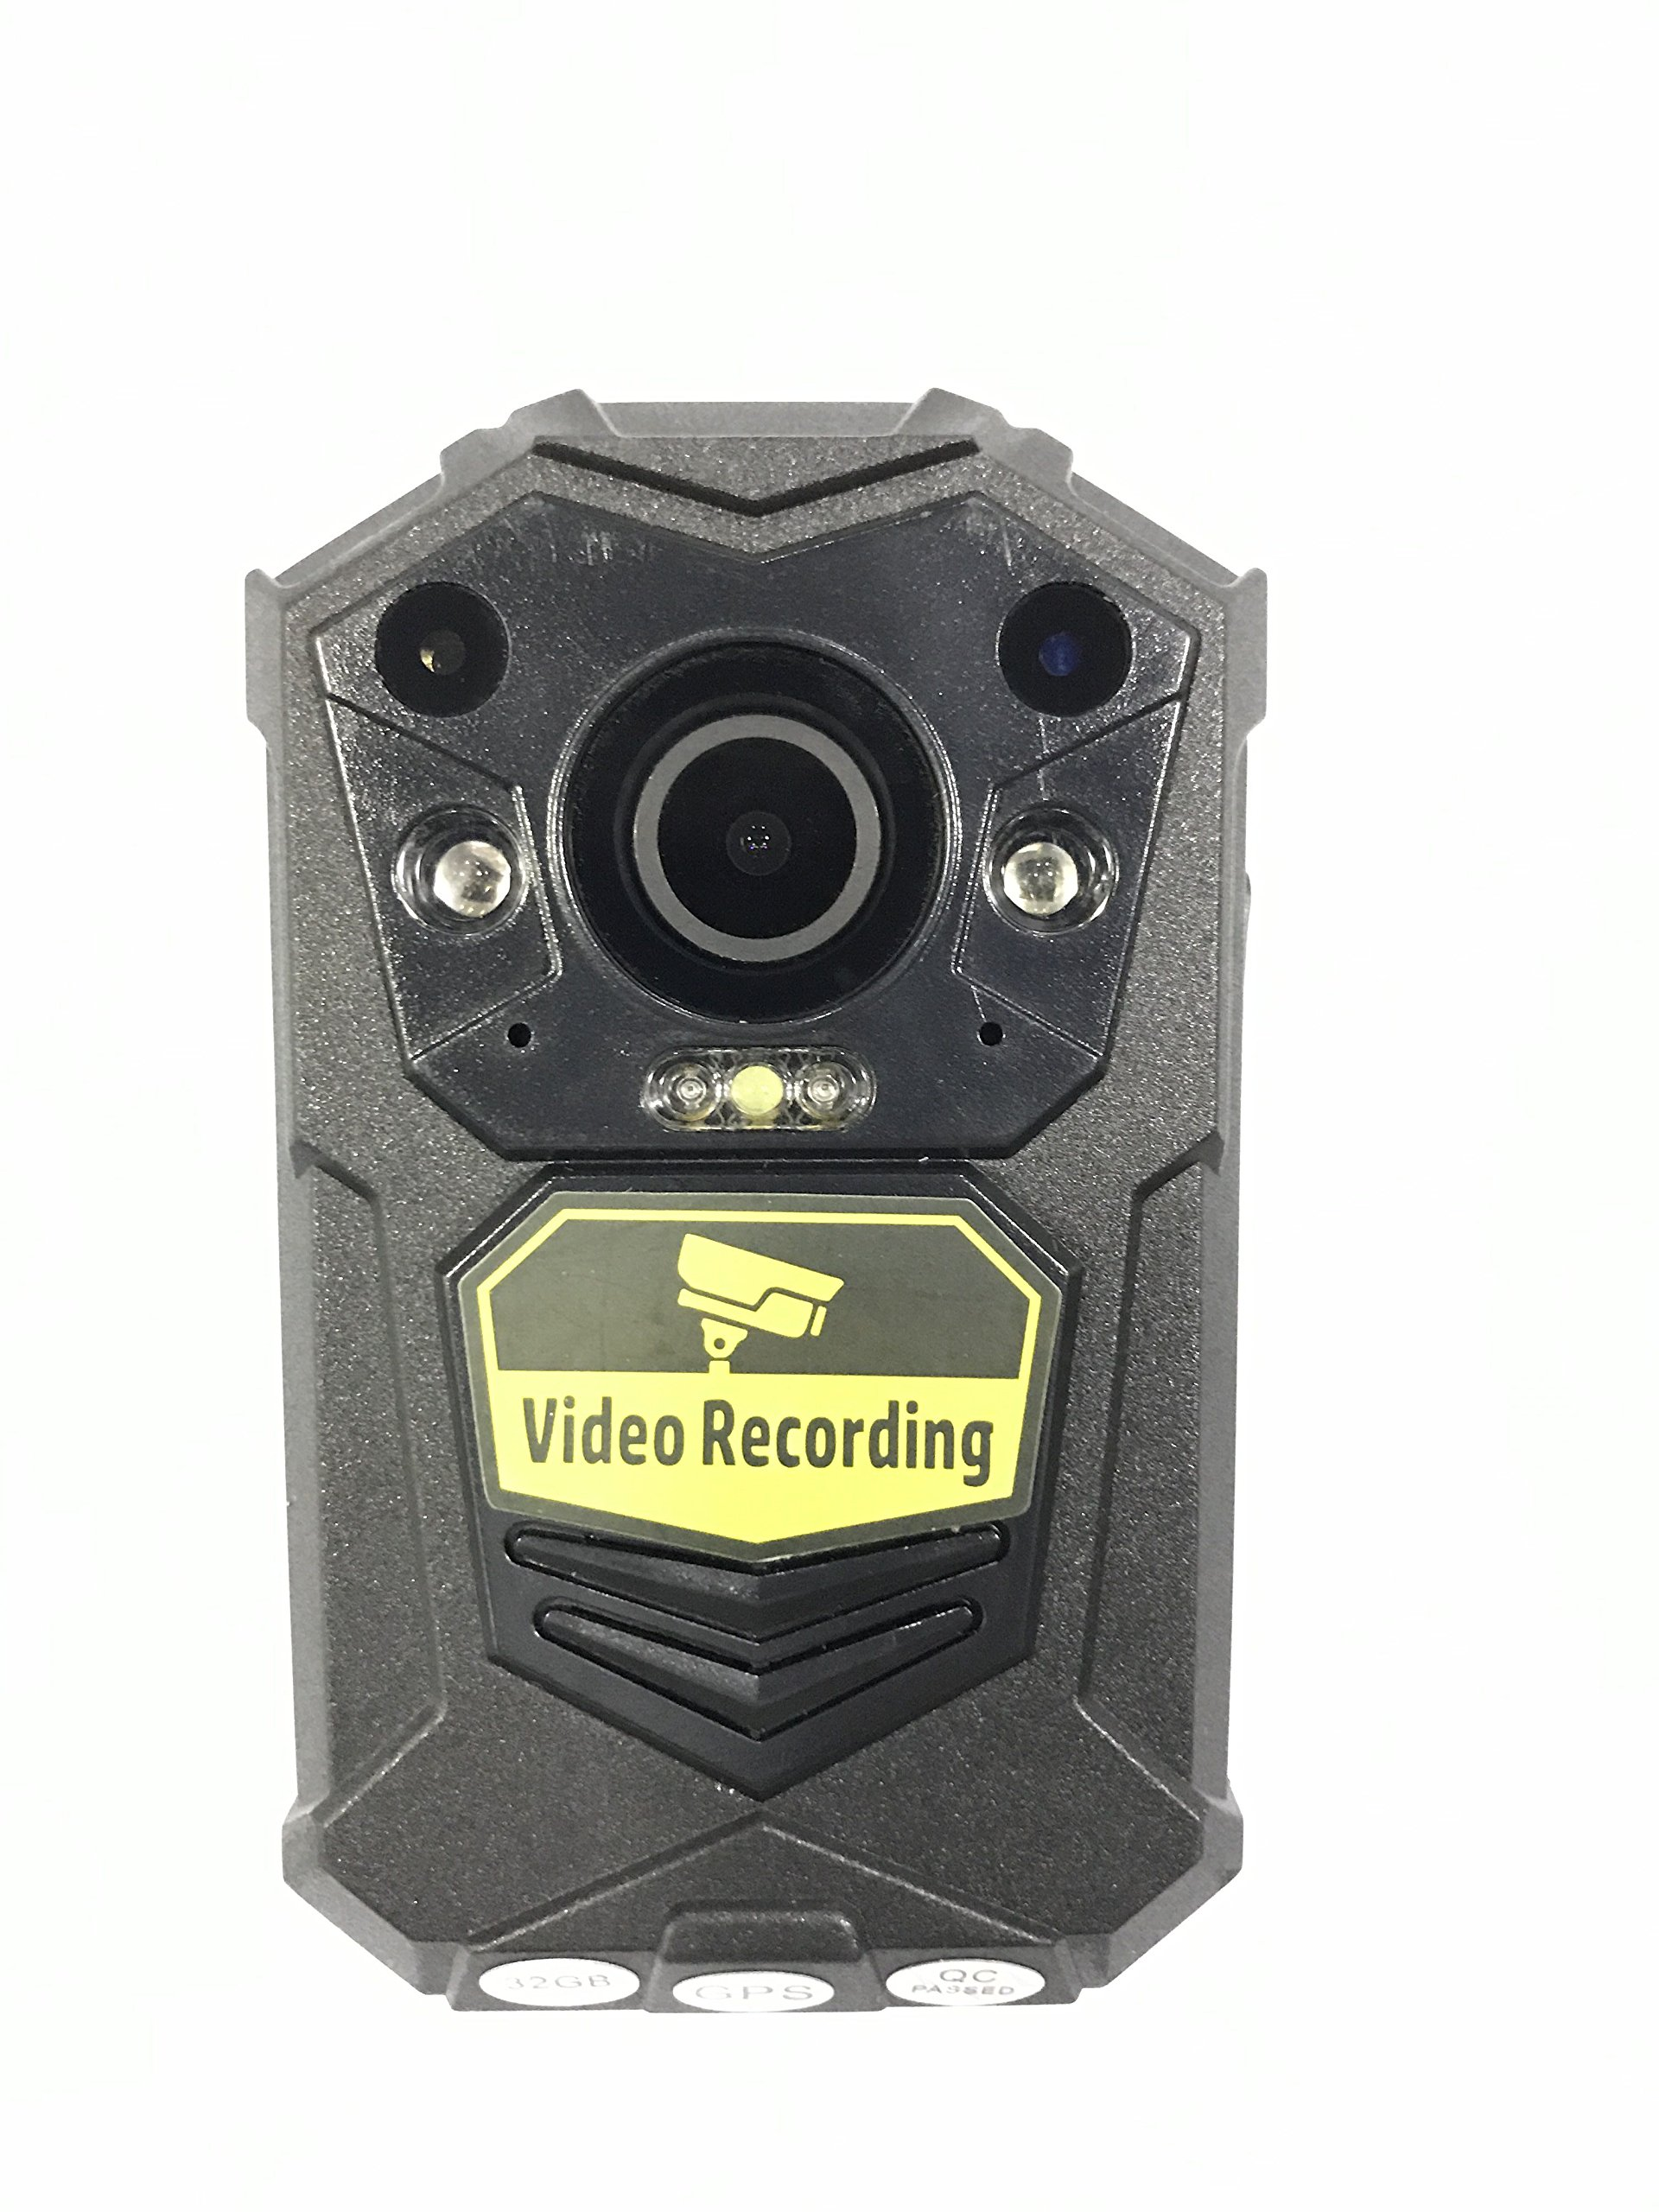 BODY CAMERA - FULL HD 1296p @30fps & 64MP Camera with a 140 Degree Wide Angle Lens + Night Vision & GPS / Comes with built in 64GB Memory Card by Timeworker